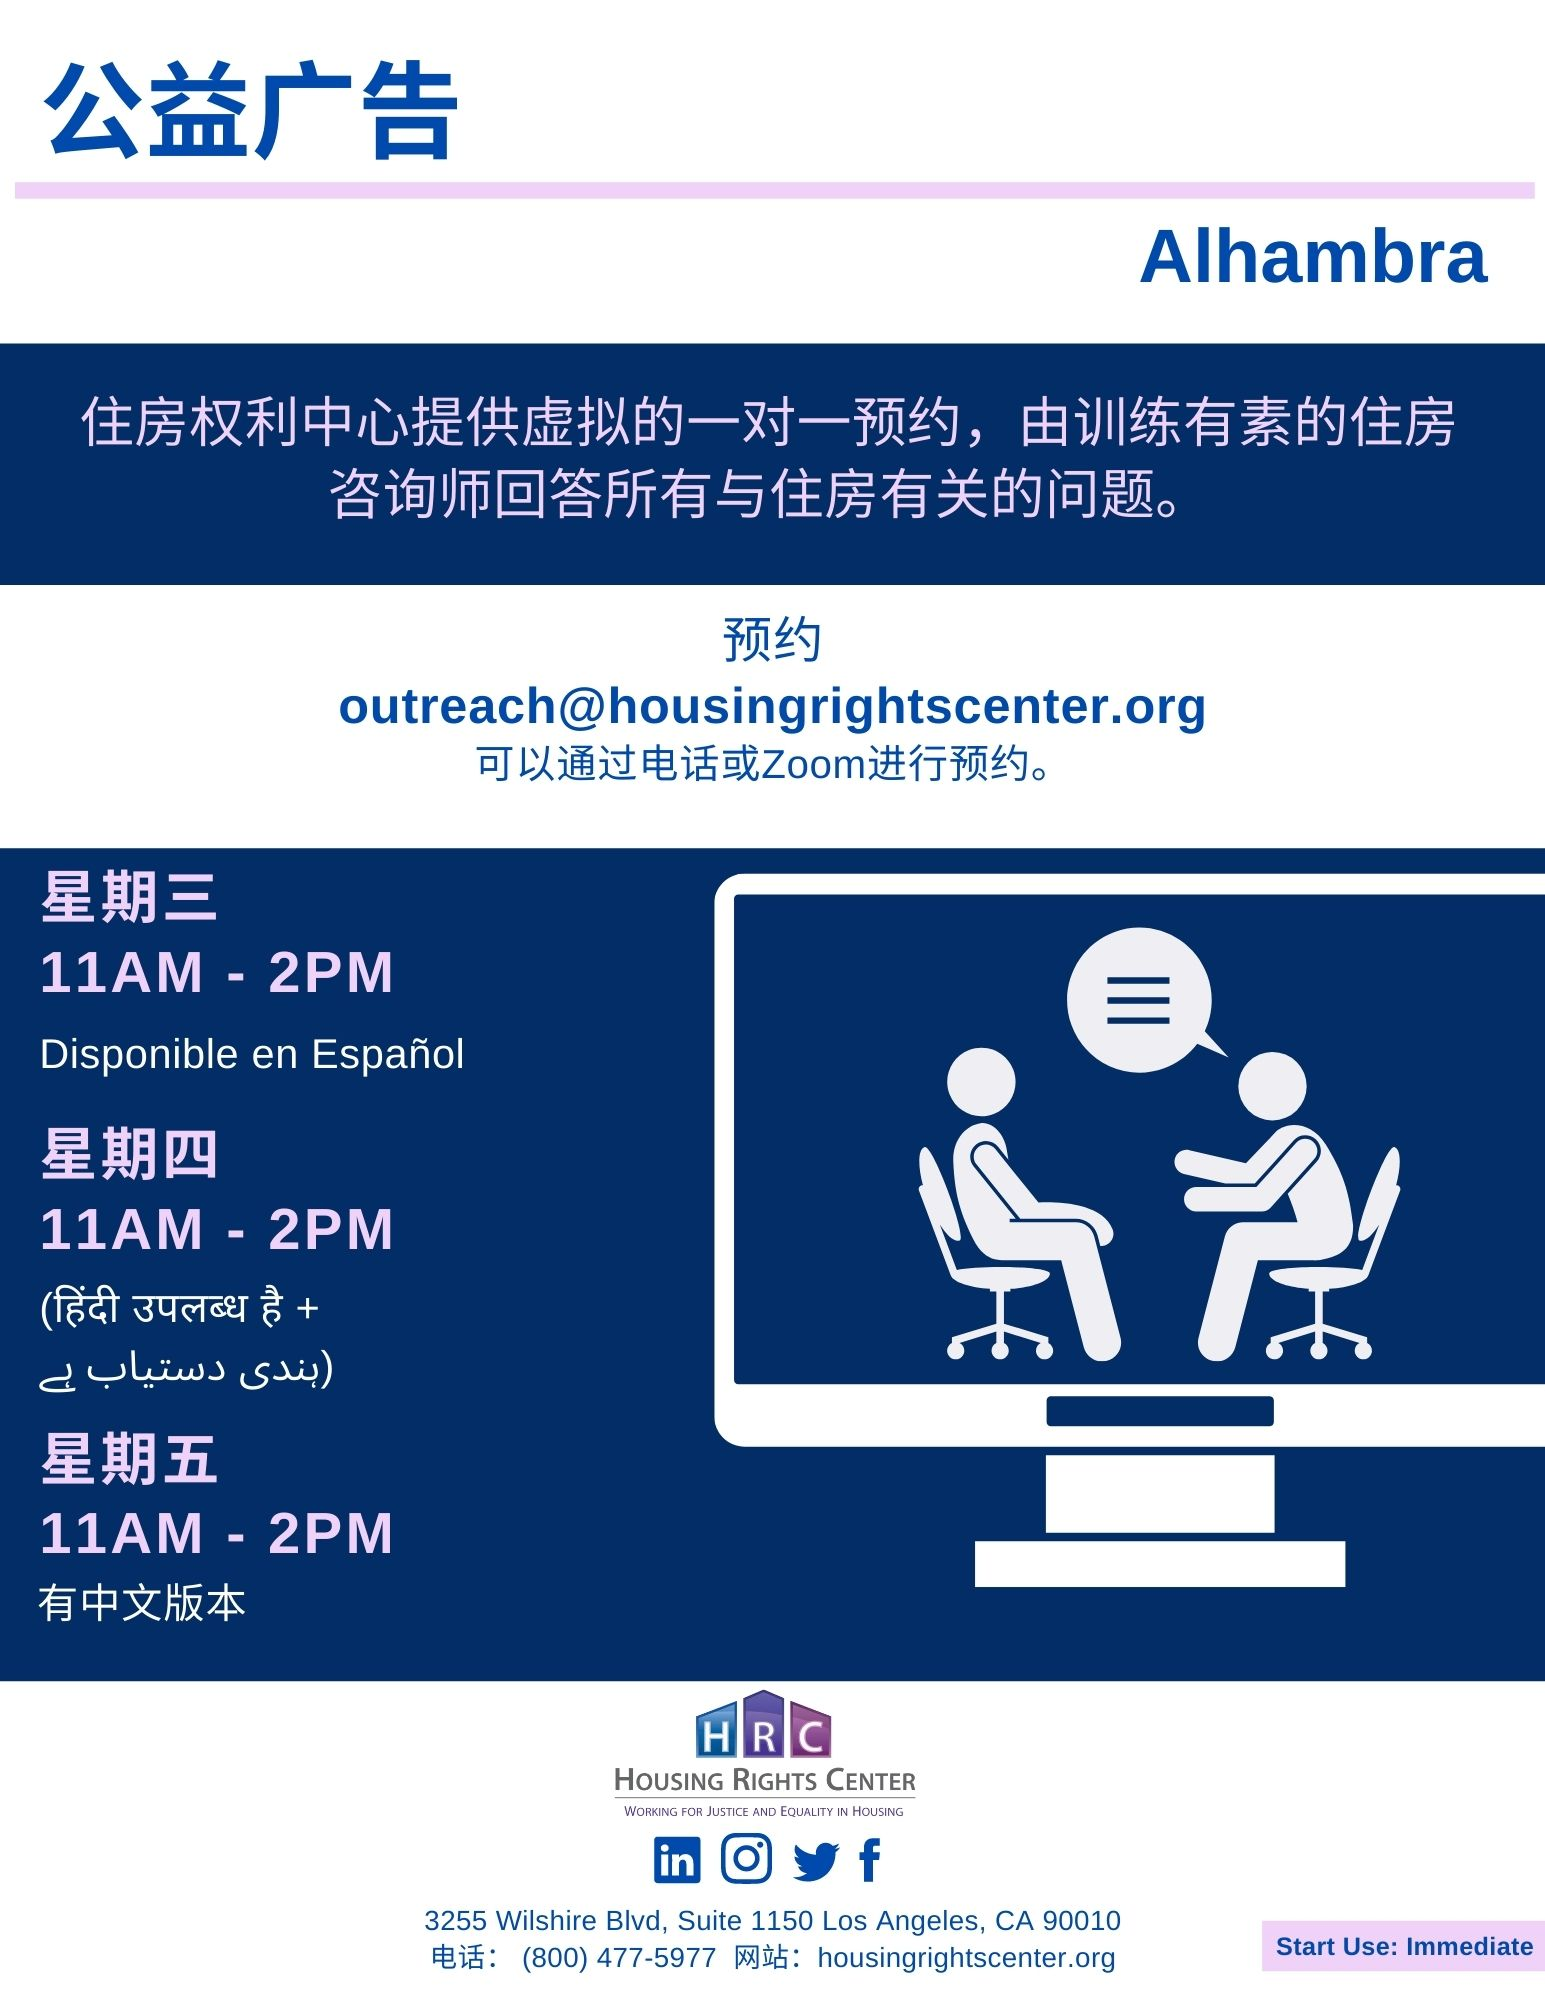 PSA on housing rights center virtual appointments in Chinese